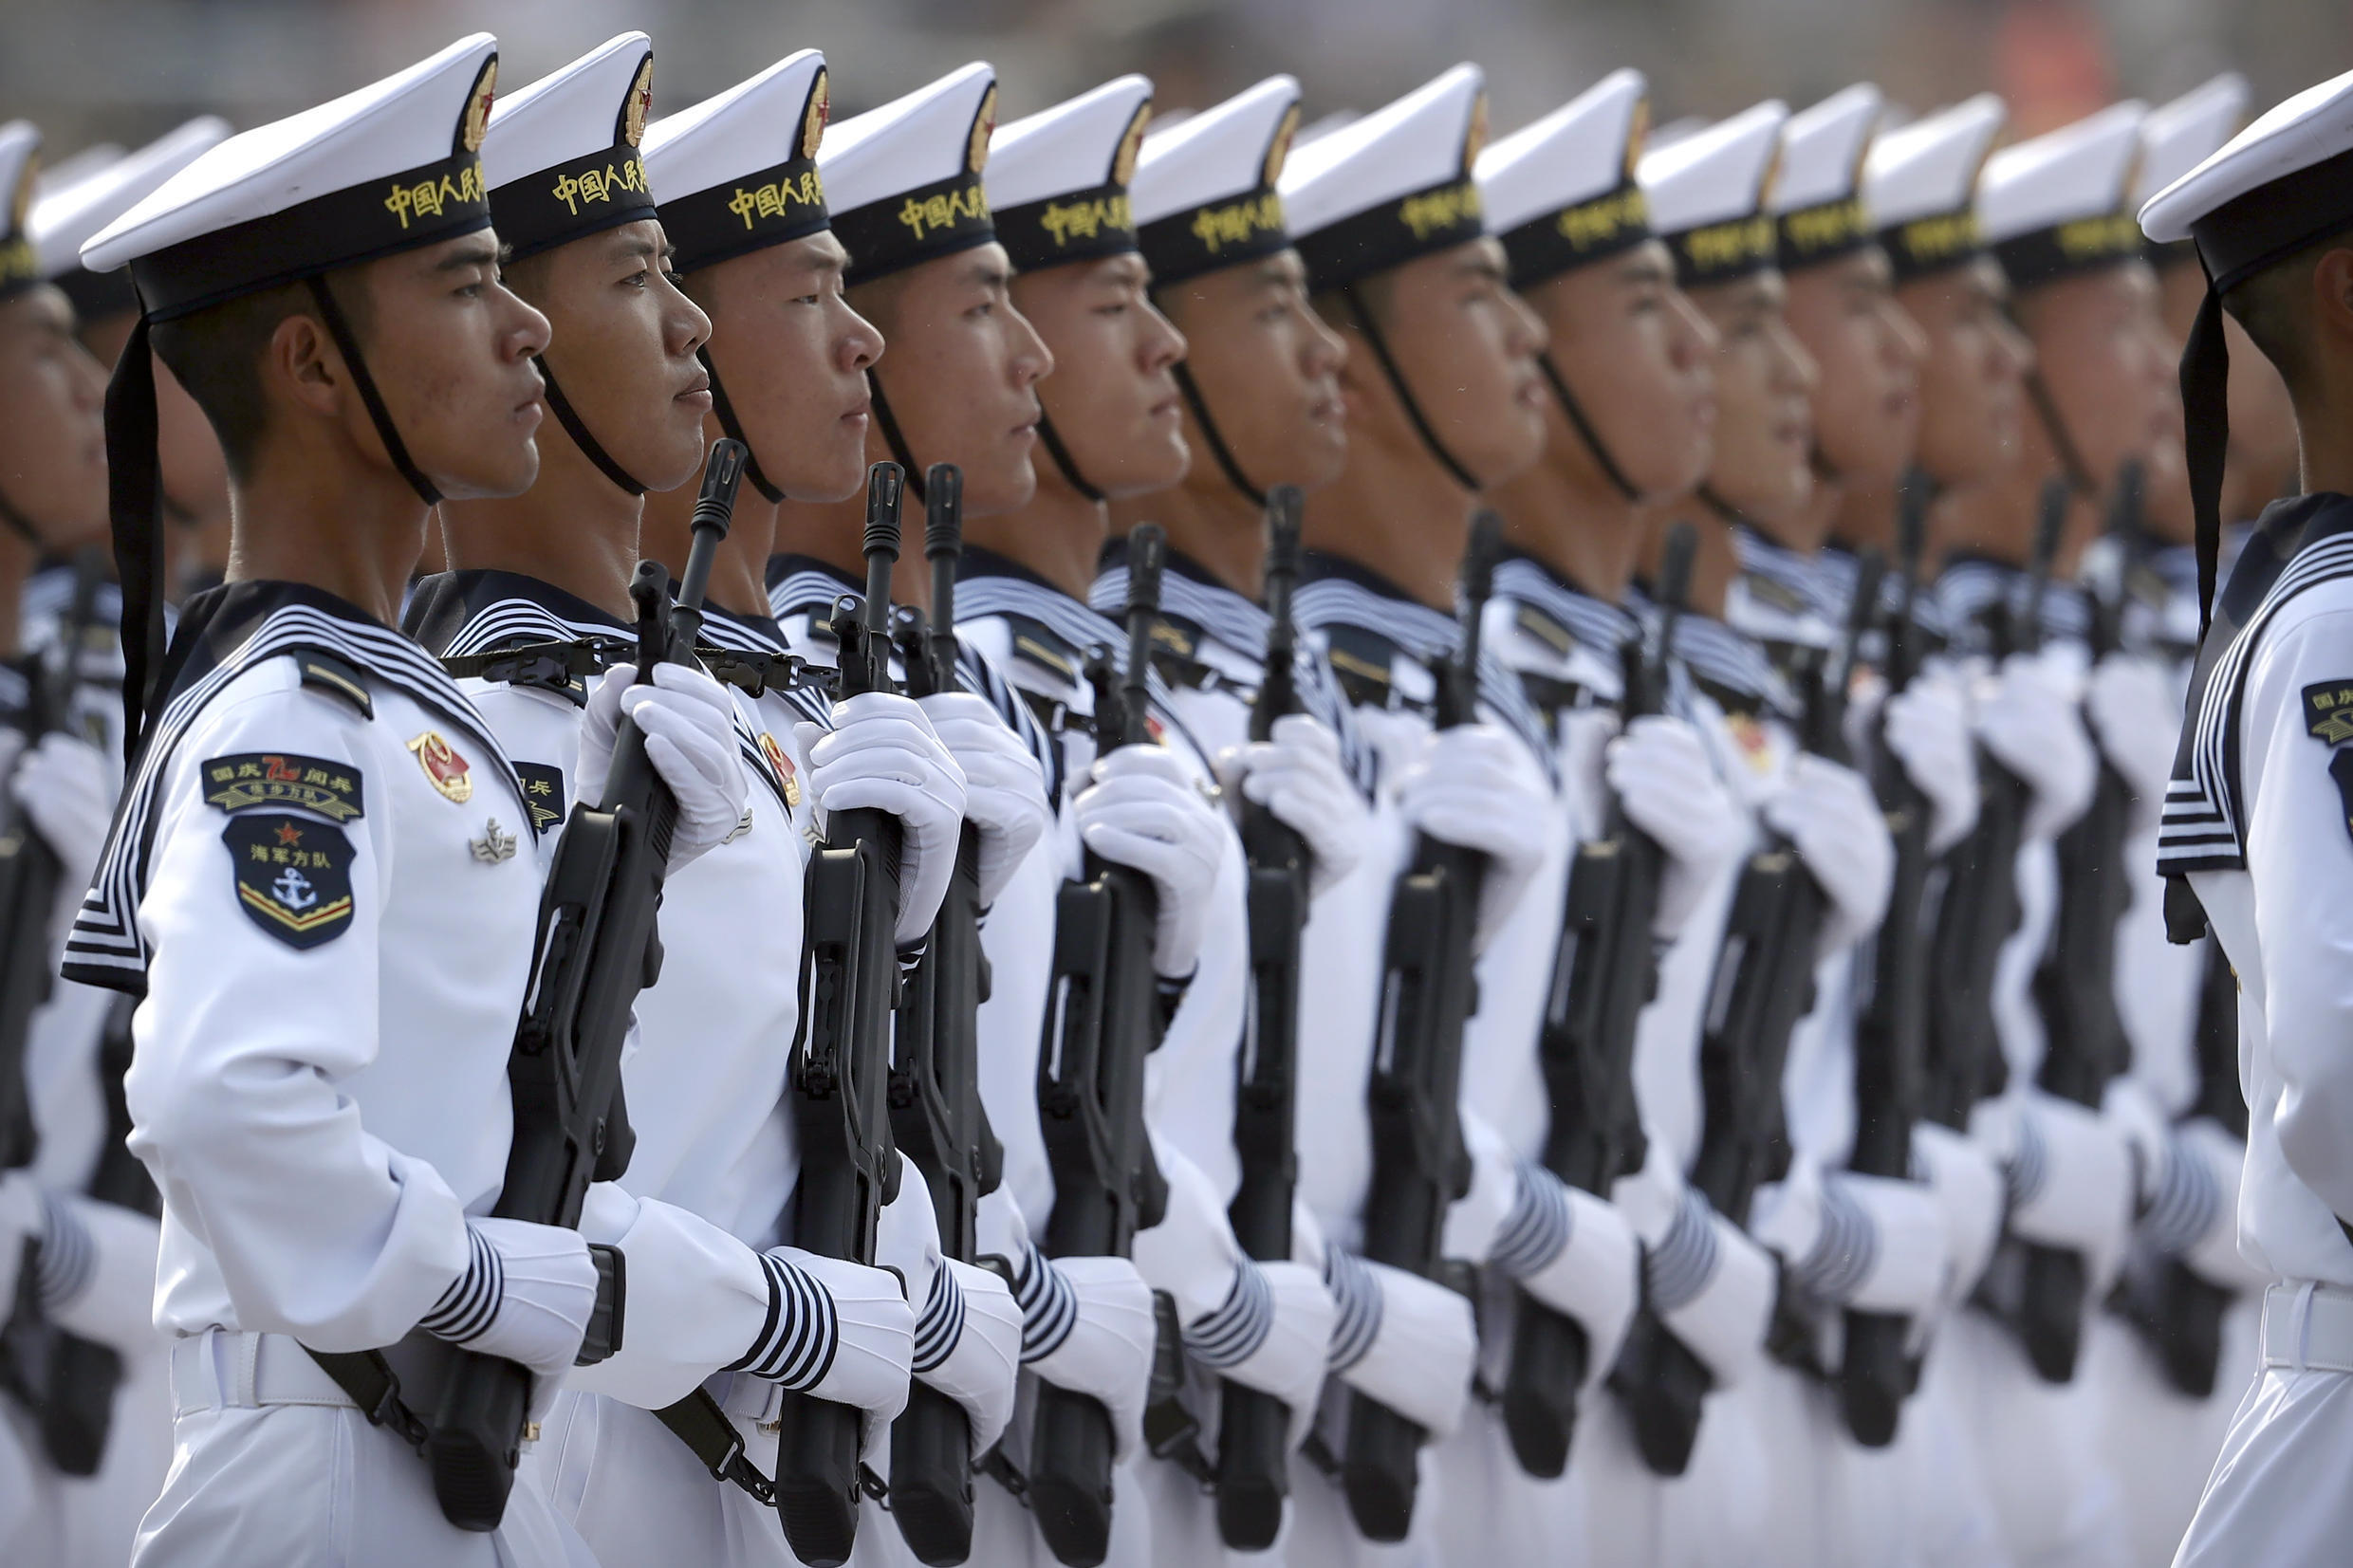 Soldiers from China's People's Liberation Army (PLA) Navy march in formation during a parade to commemorate the 70th anniversary of the founding of Communist China in Beijing, Tuesday, Oct. 1, 2019. Trucks carrying weapons including a nuclear-armed missile designed to evade U.S. defenses rumbled through Beijing as the Communist Party celebrated its 70th anniversary in power with a parade Tuesday that showcased China's ambition as a rising global force.